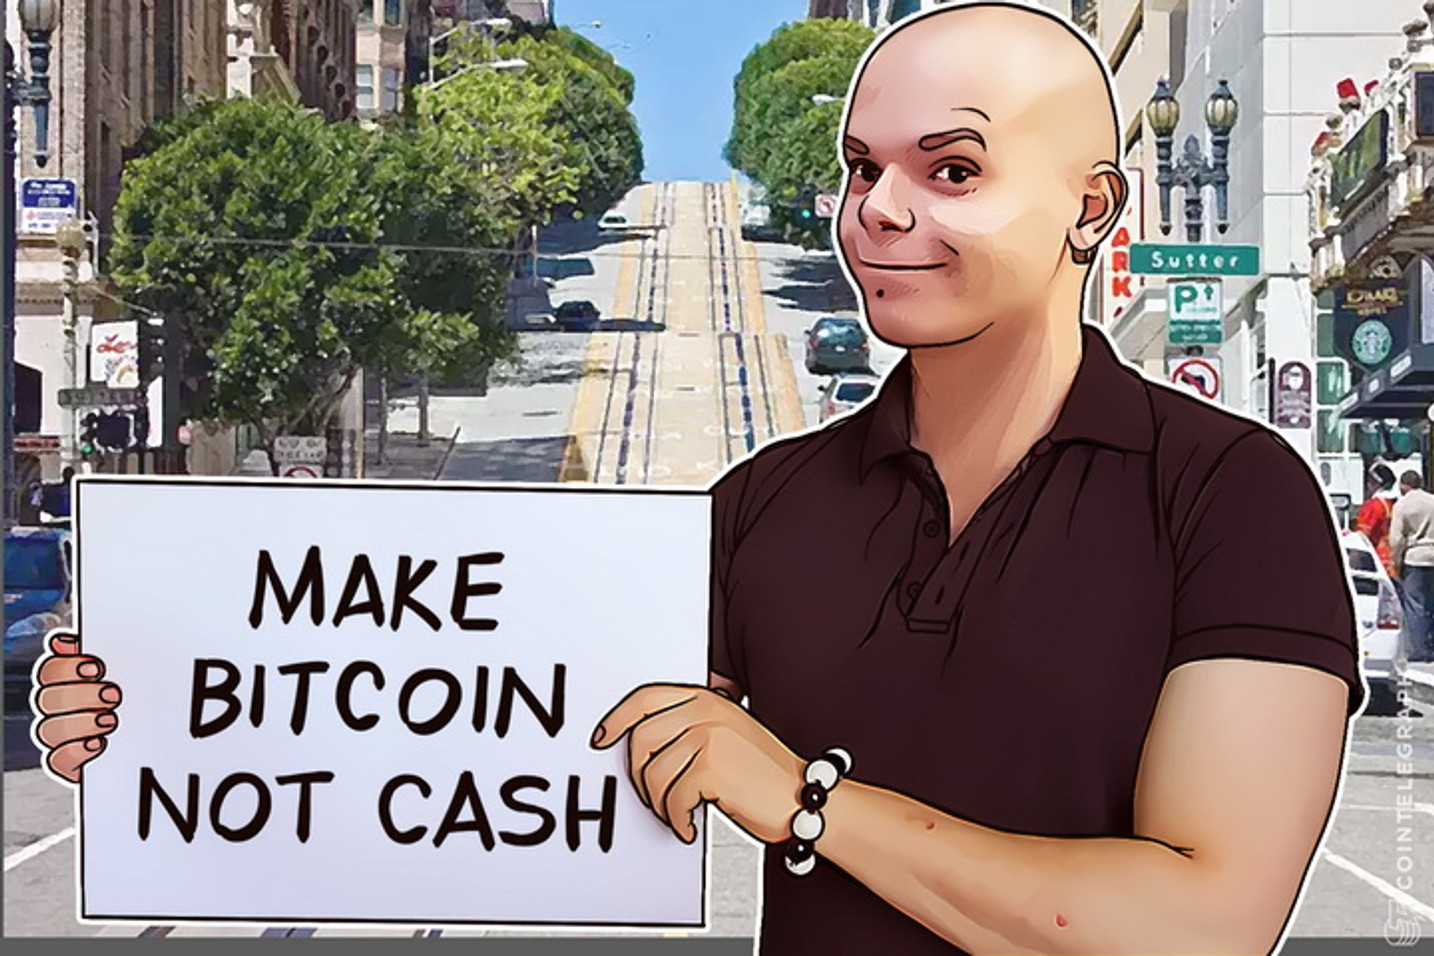 Cash Losing Popularity, Banks Losing Trust - The Time is Ripe for Bitcoin?